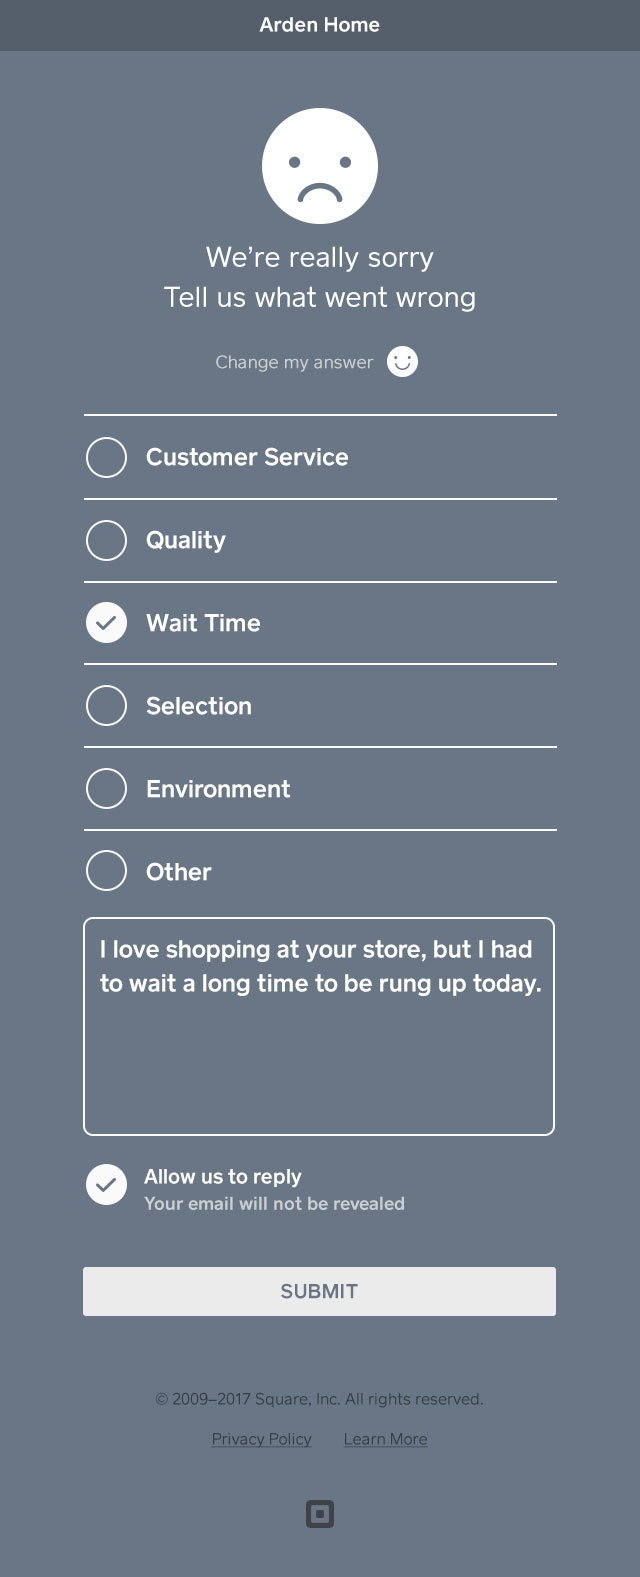 provide additional feedback on your experience with the merchant